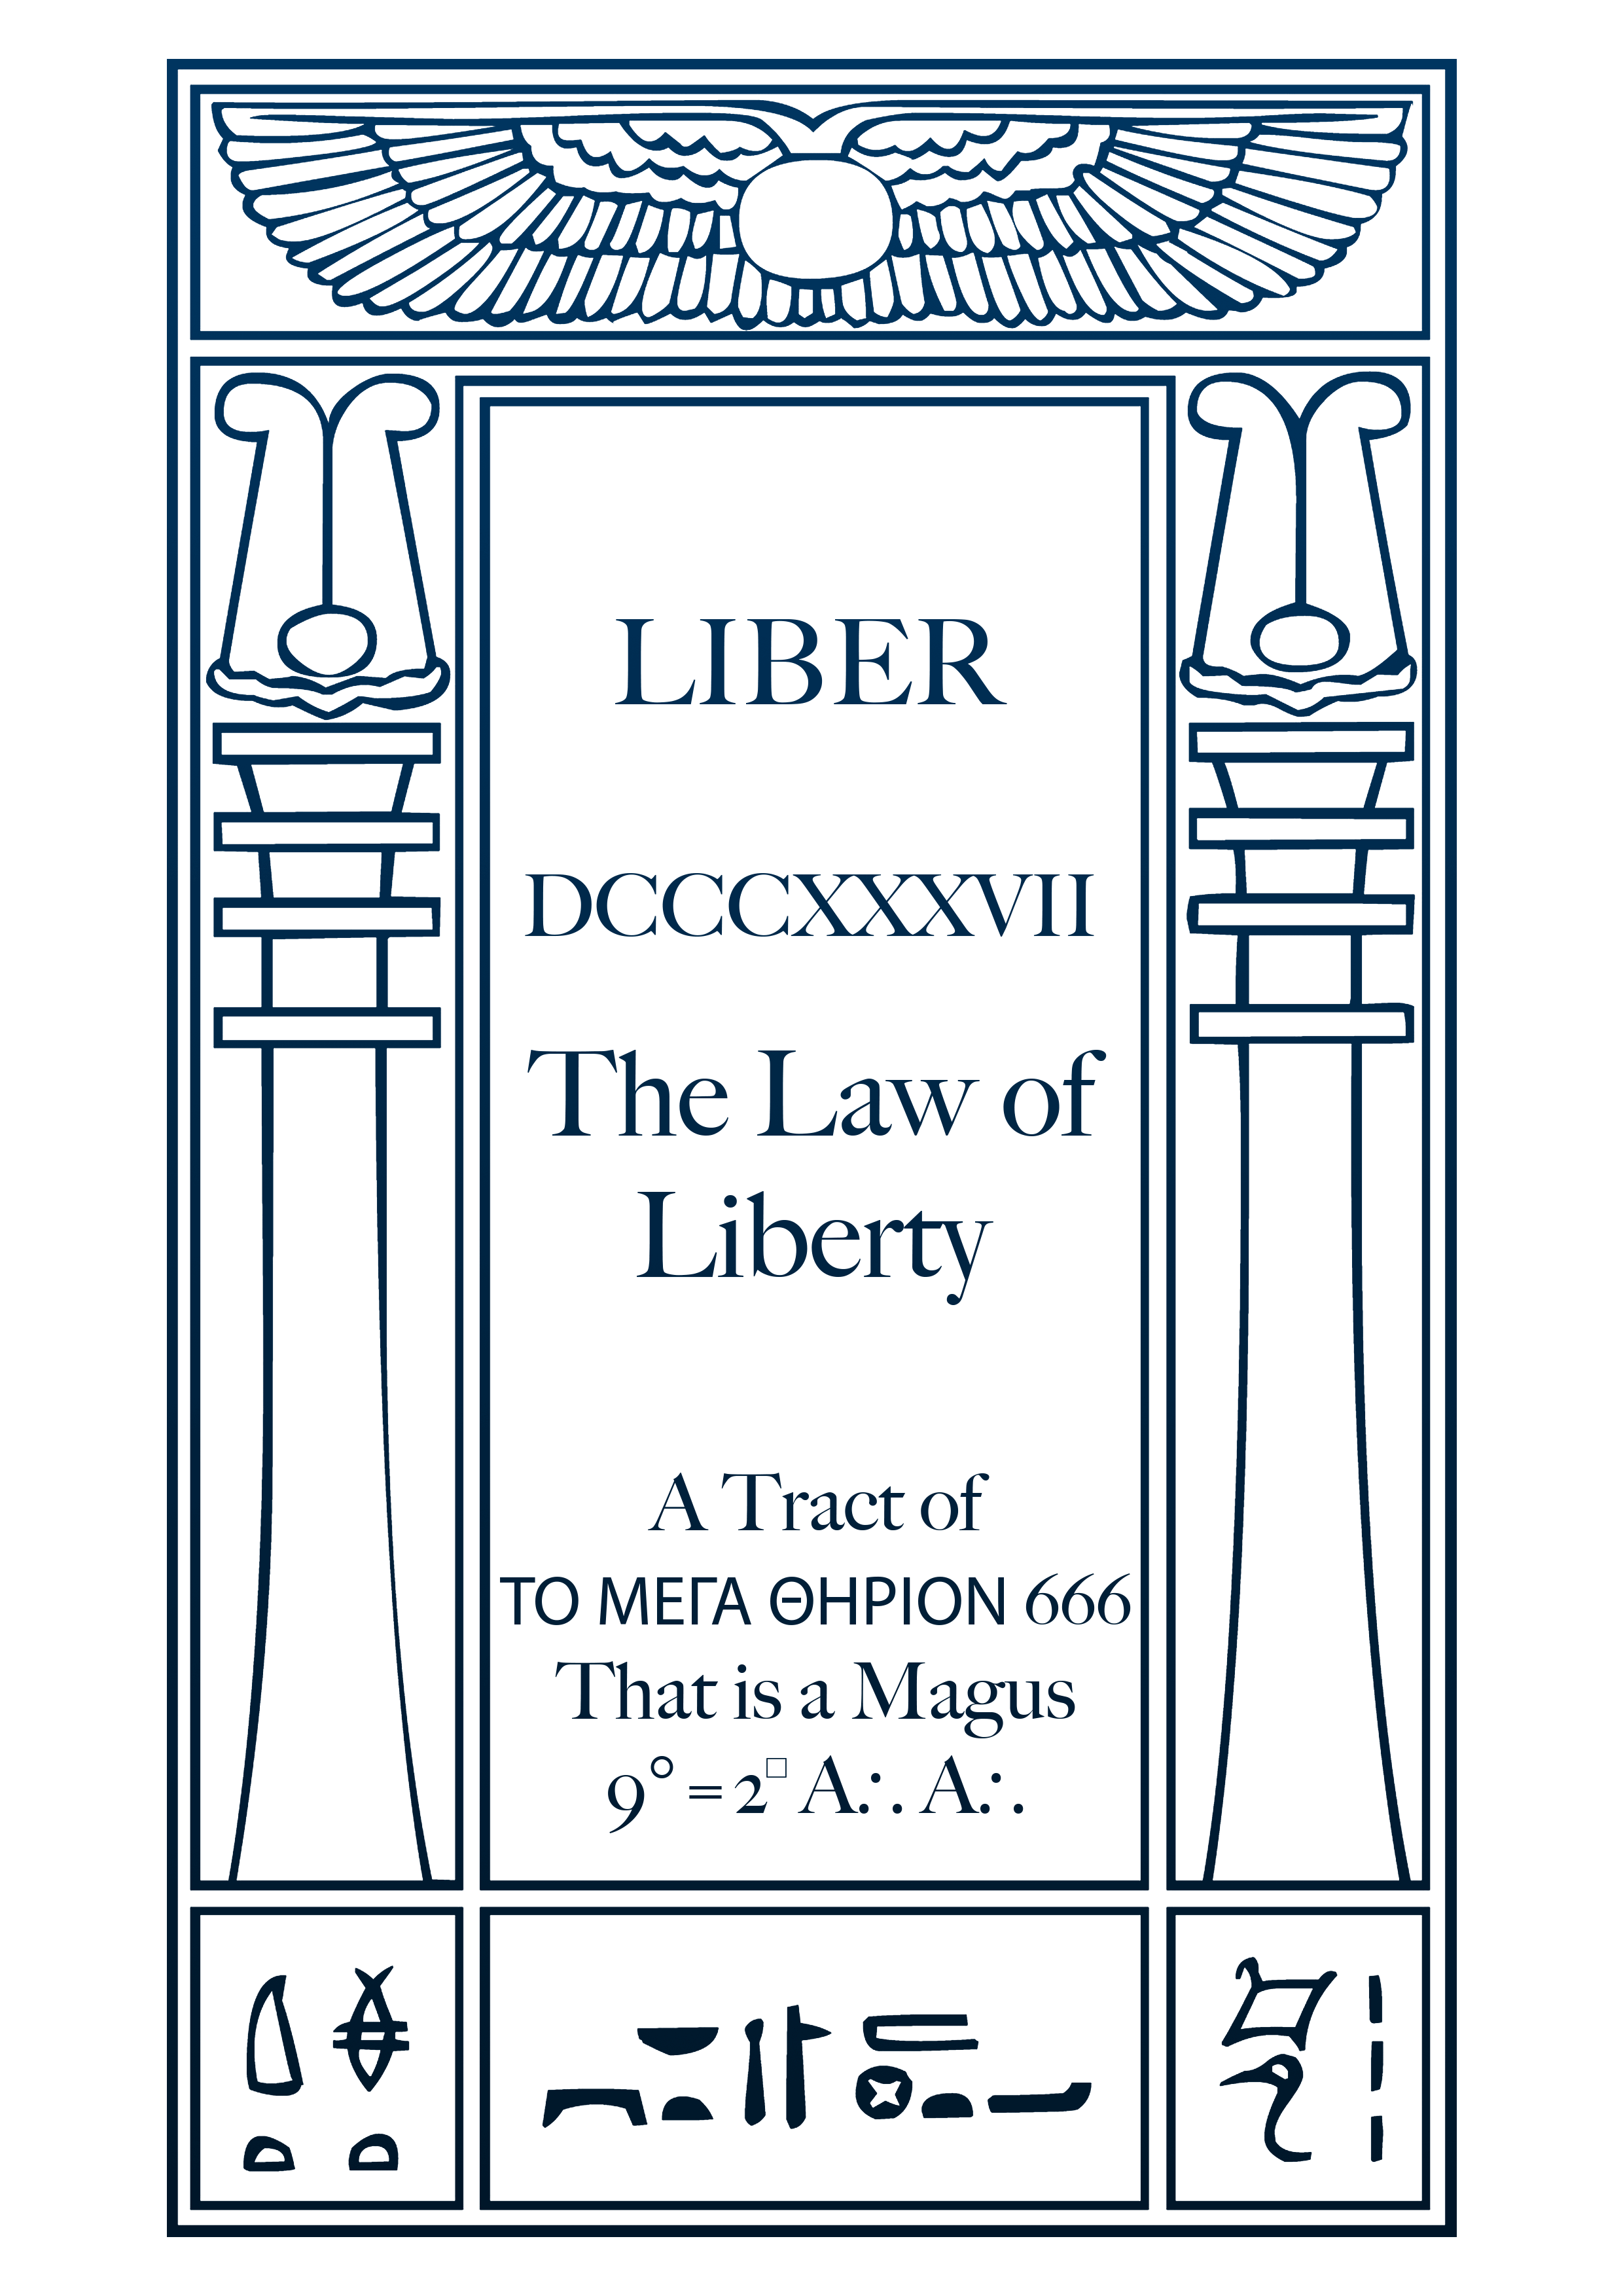 Liber DCCCXXXVII – The Law of Liberty – A Tract of ΤΟ ΜΕΓΑ ΘΗΡΙΟΝ 666 That is a Magus 9°=2⸋ A∴A∴